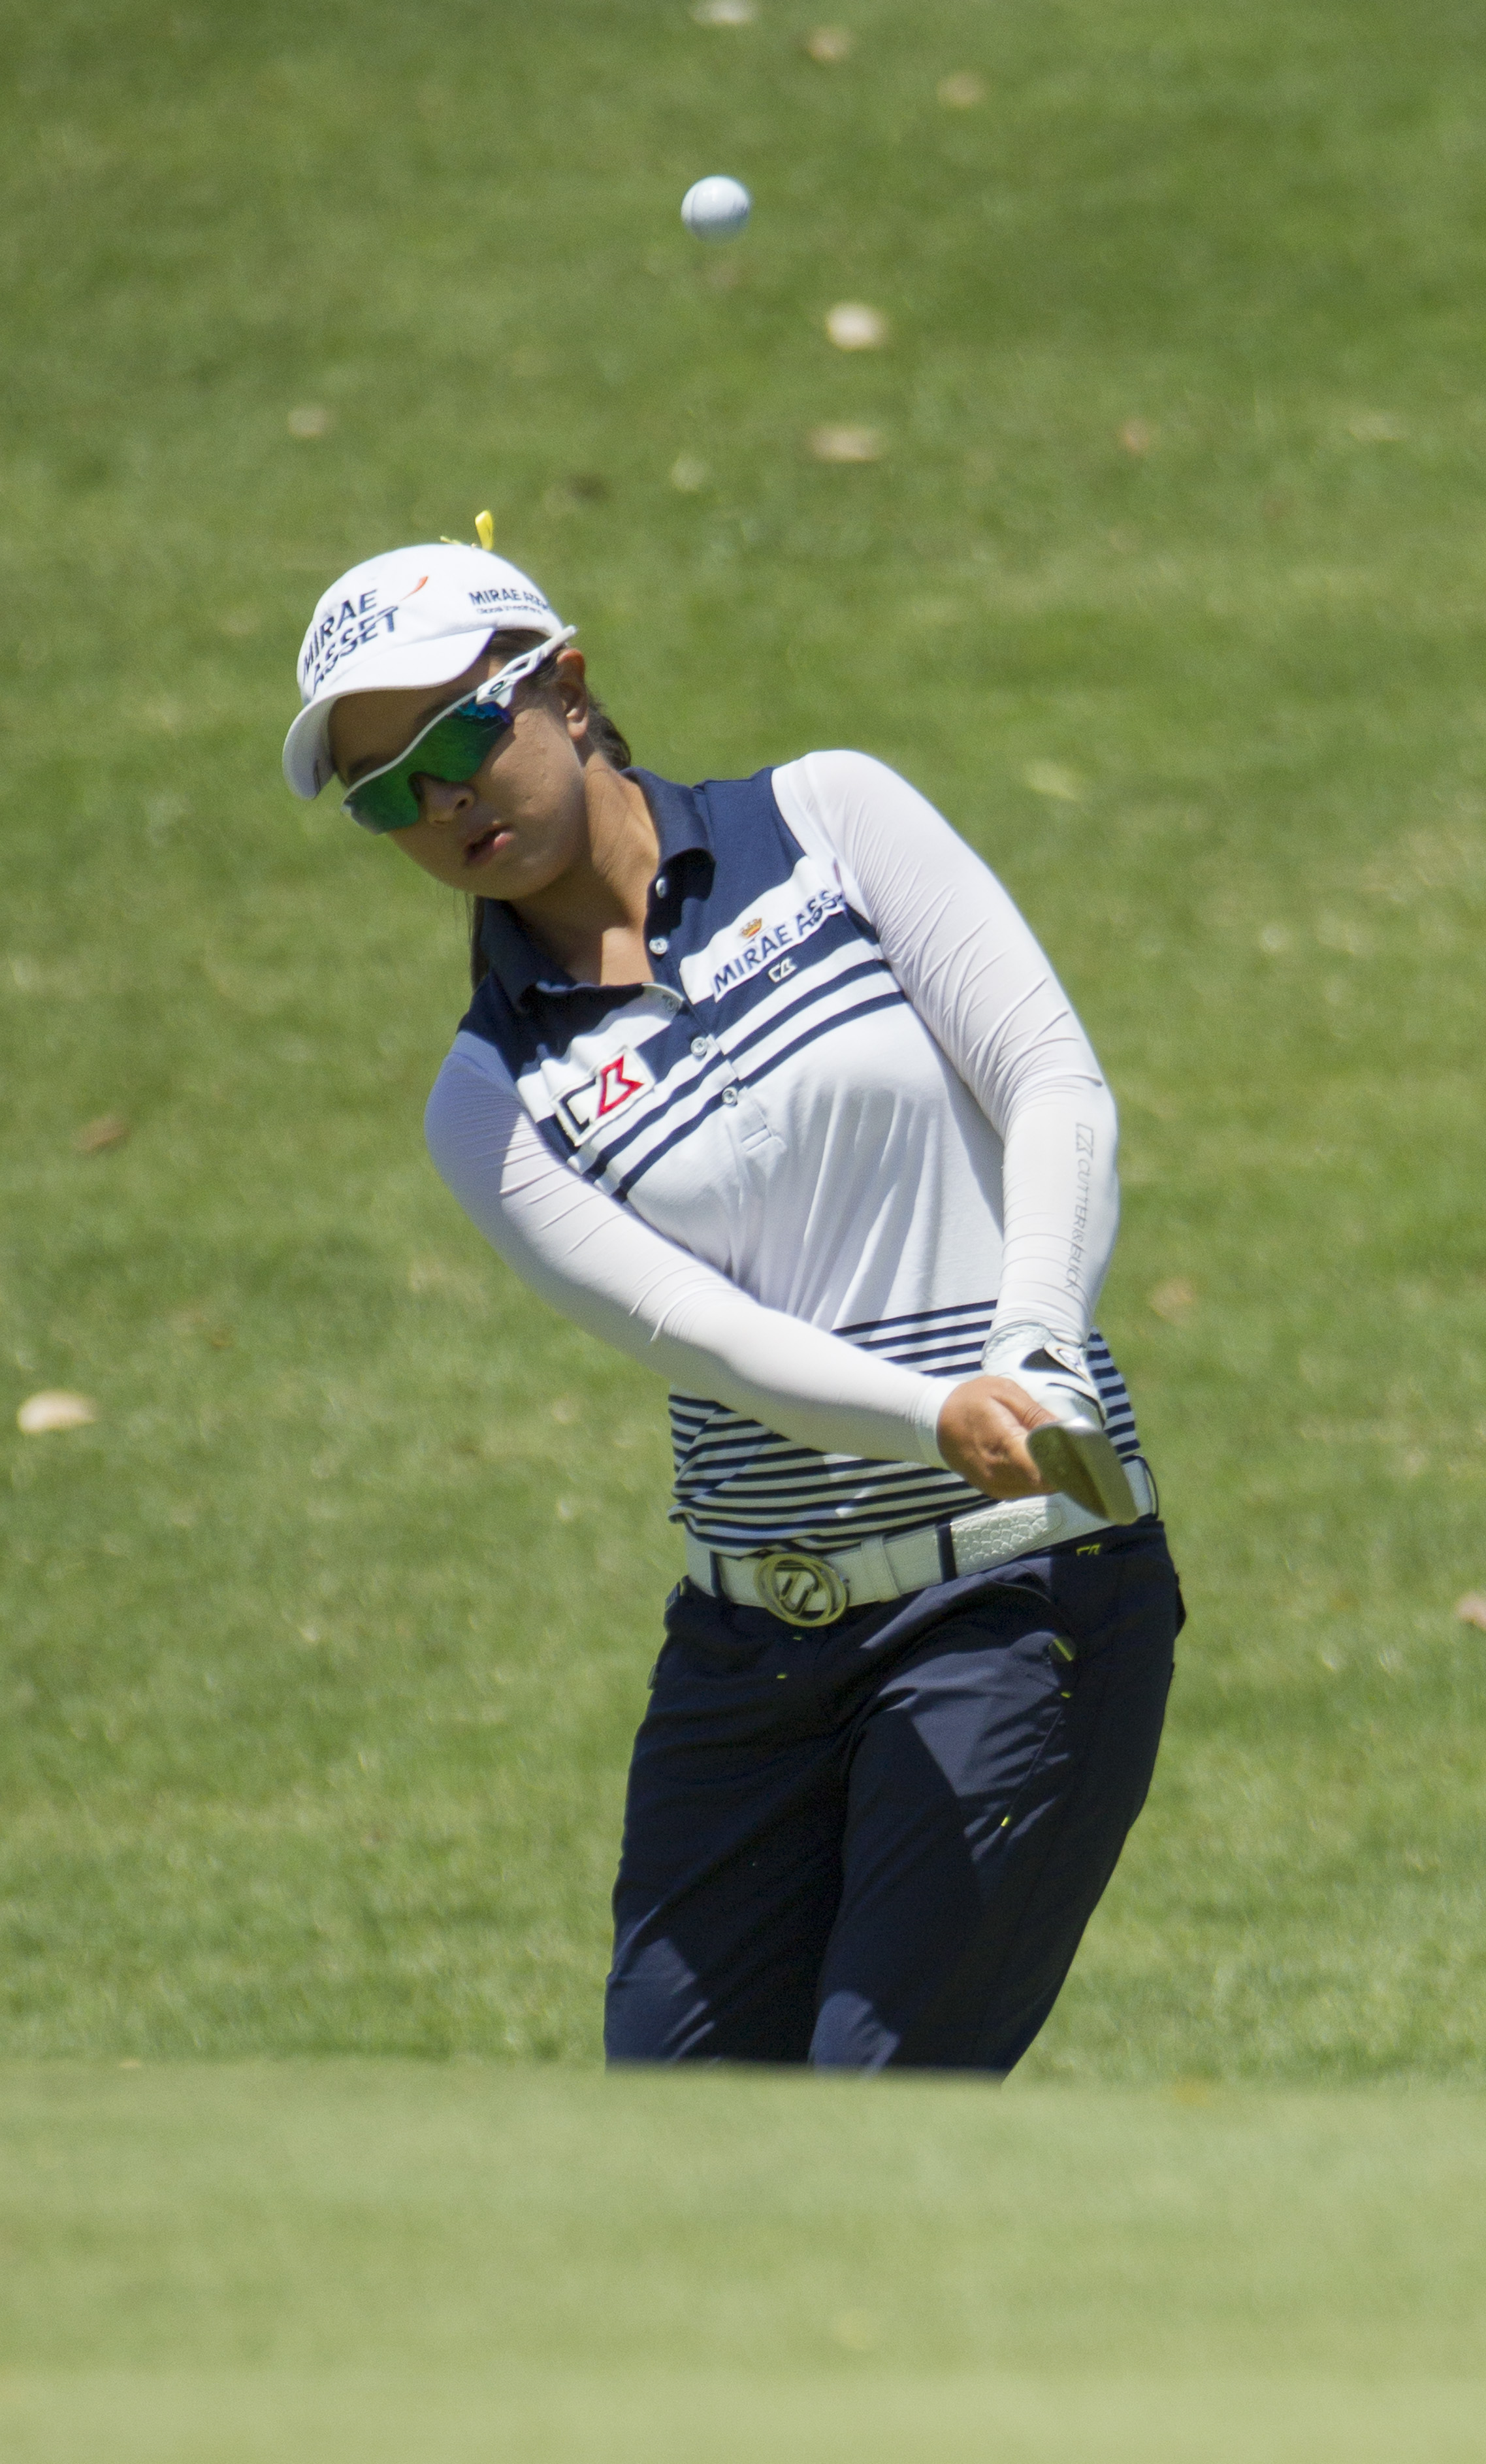 Sei Young Kim, of South Korea, chips onto the third green in the third round of the LPGA Lotte Championship golf tournament at Ko Olina Golf Club, Friday, April 17, 2015, in Kapolei, Hawaii. (AP Photo/Eugene Tanner)